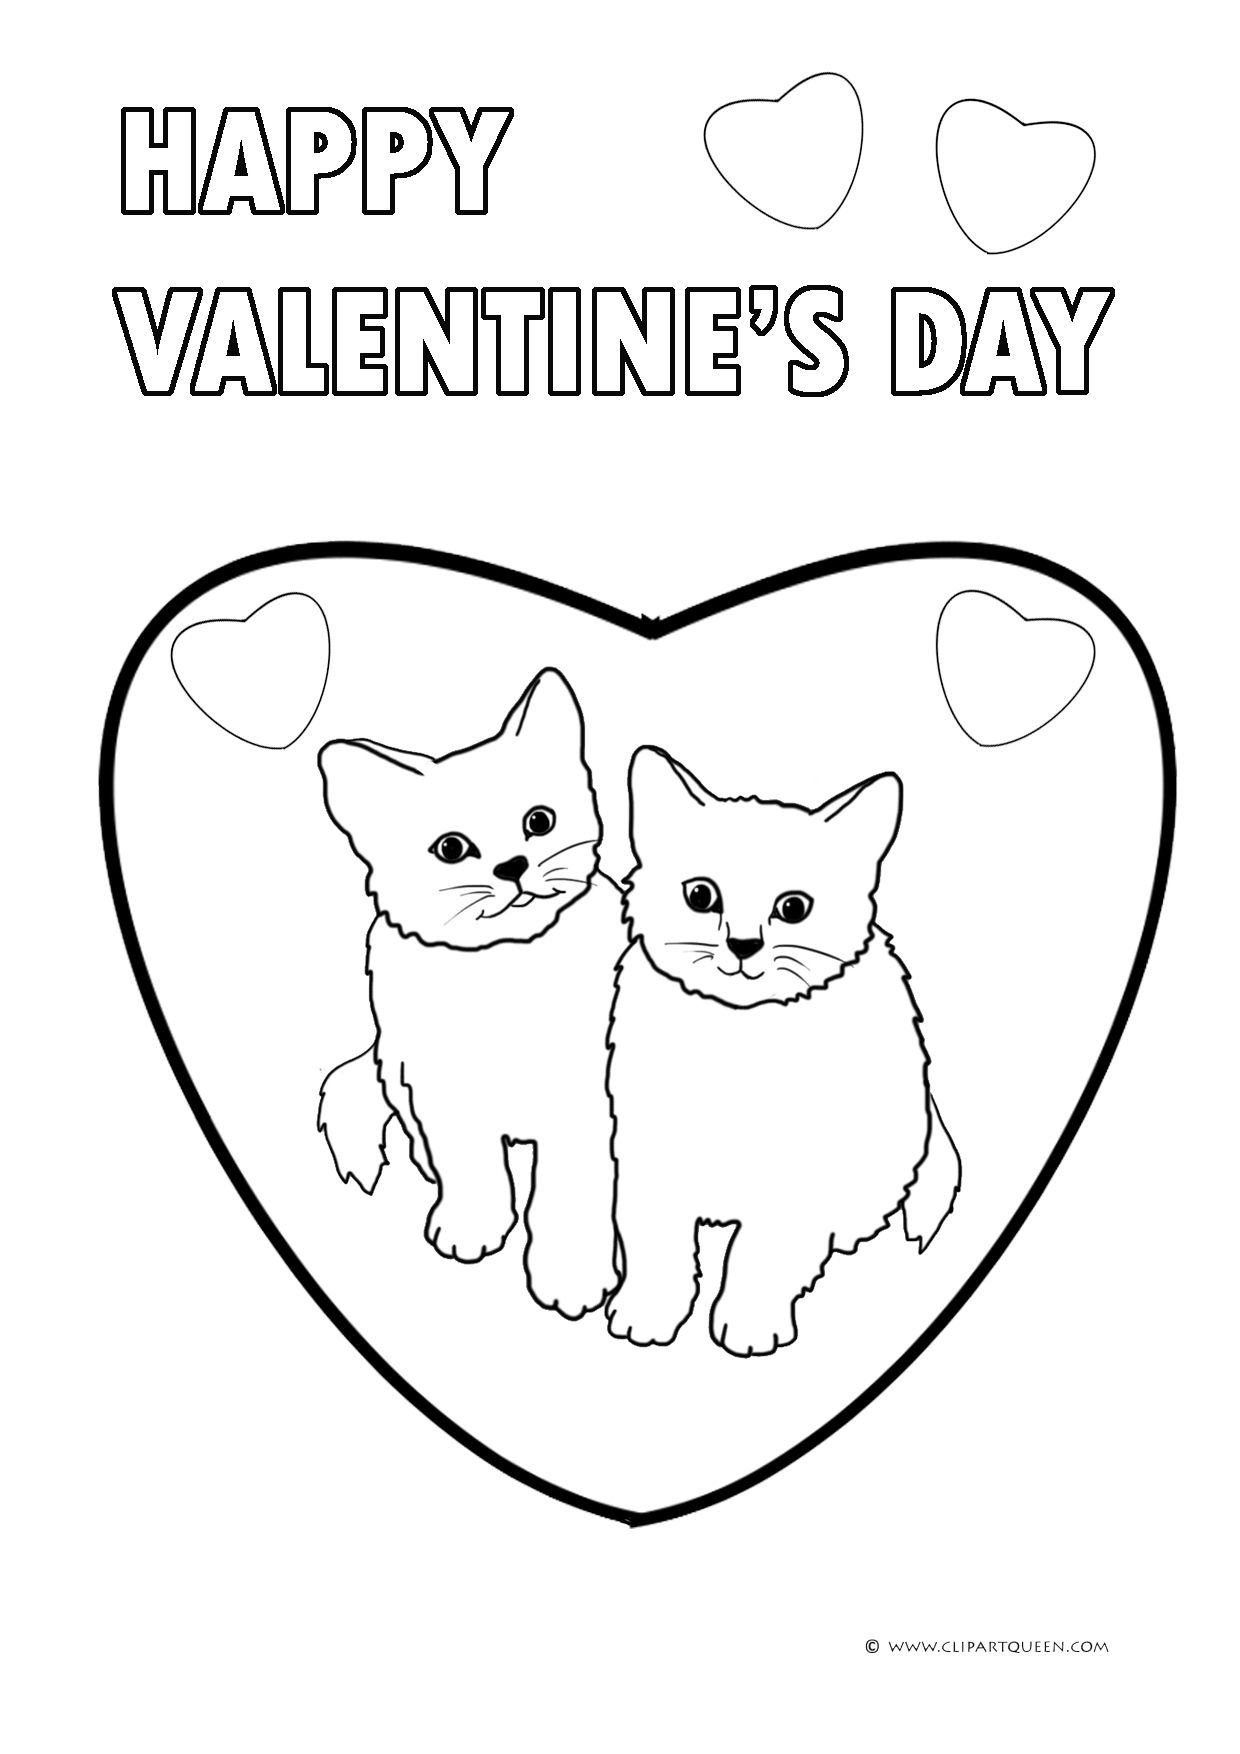 Christian Valentines Clipart At Getdrawings